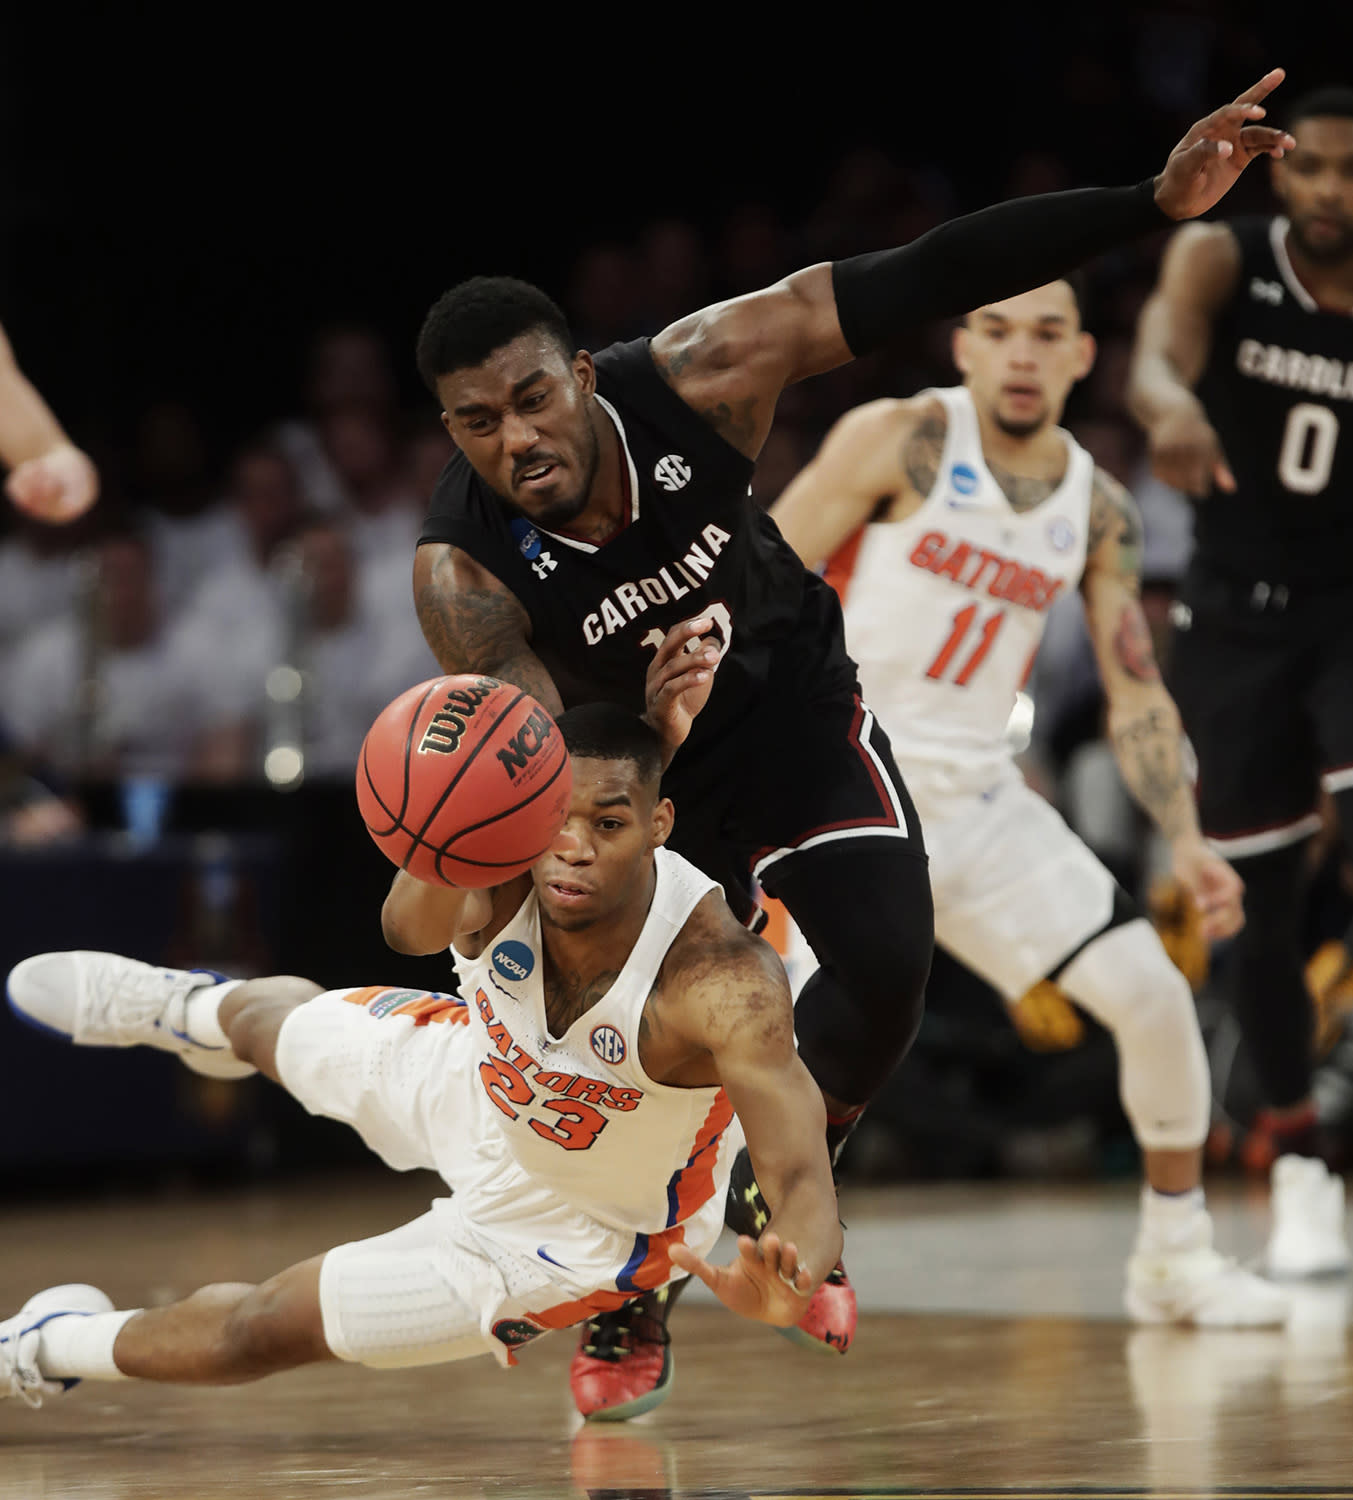 <p>Florida forward Justin Leon (23) and South Carolina guard Duane Notice (10) scramble for a loose ball during the second half of the East Regional championship game of the NCAA men's college basketball tournament, March 26, 2017, in New York. (AP Photo/Frank Franklin II) </p>